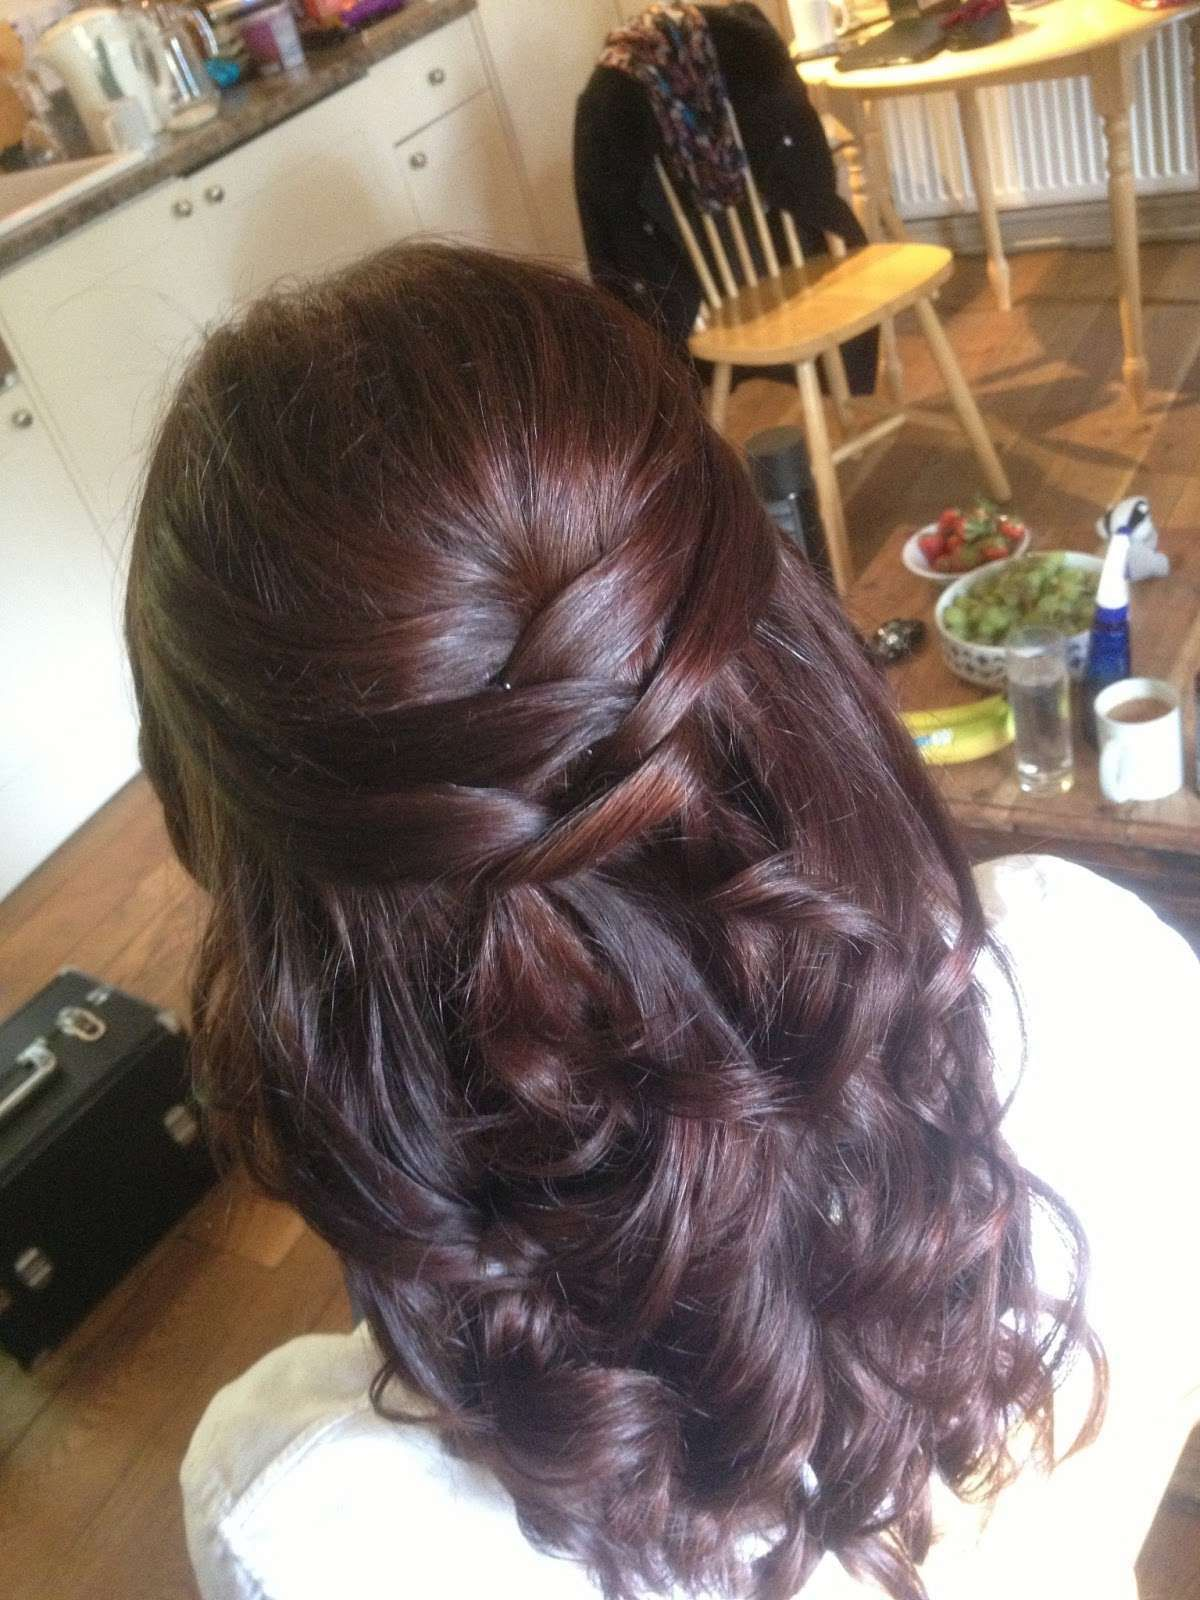 Prom Hairstyles For Long Straight Hair Design Free Download Hairstylesconcept Medium Hair Styles Bridesmaid Hair Wedding Hair Down